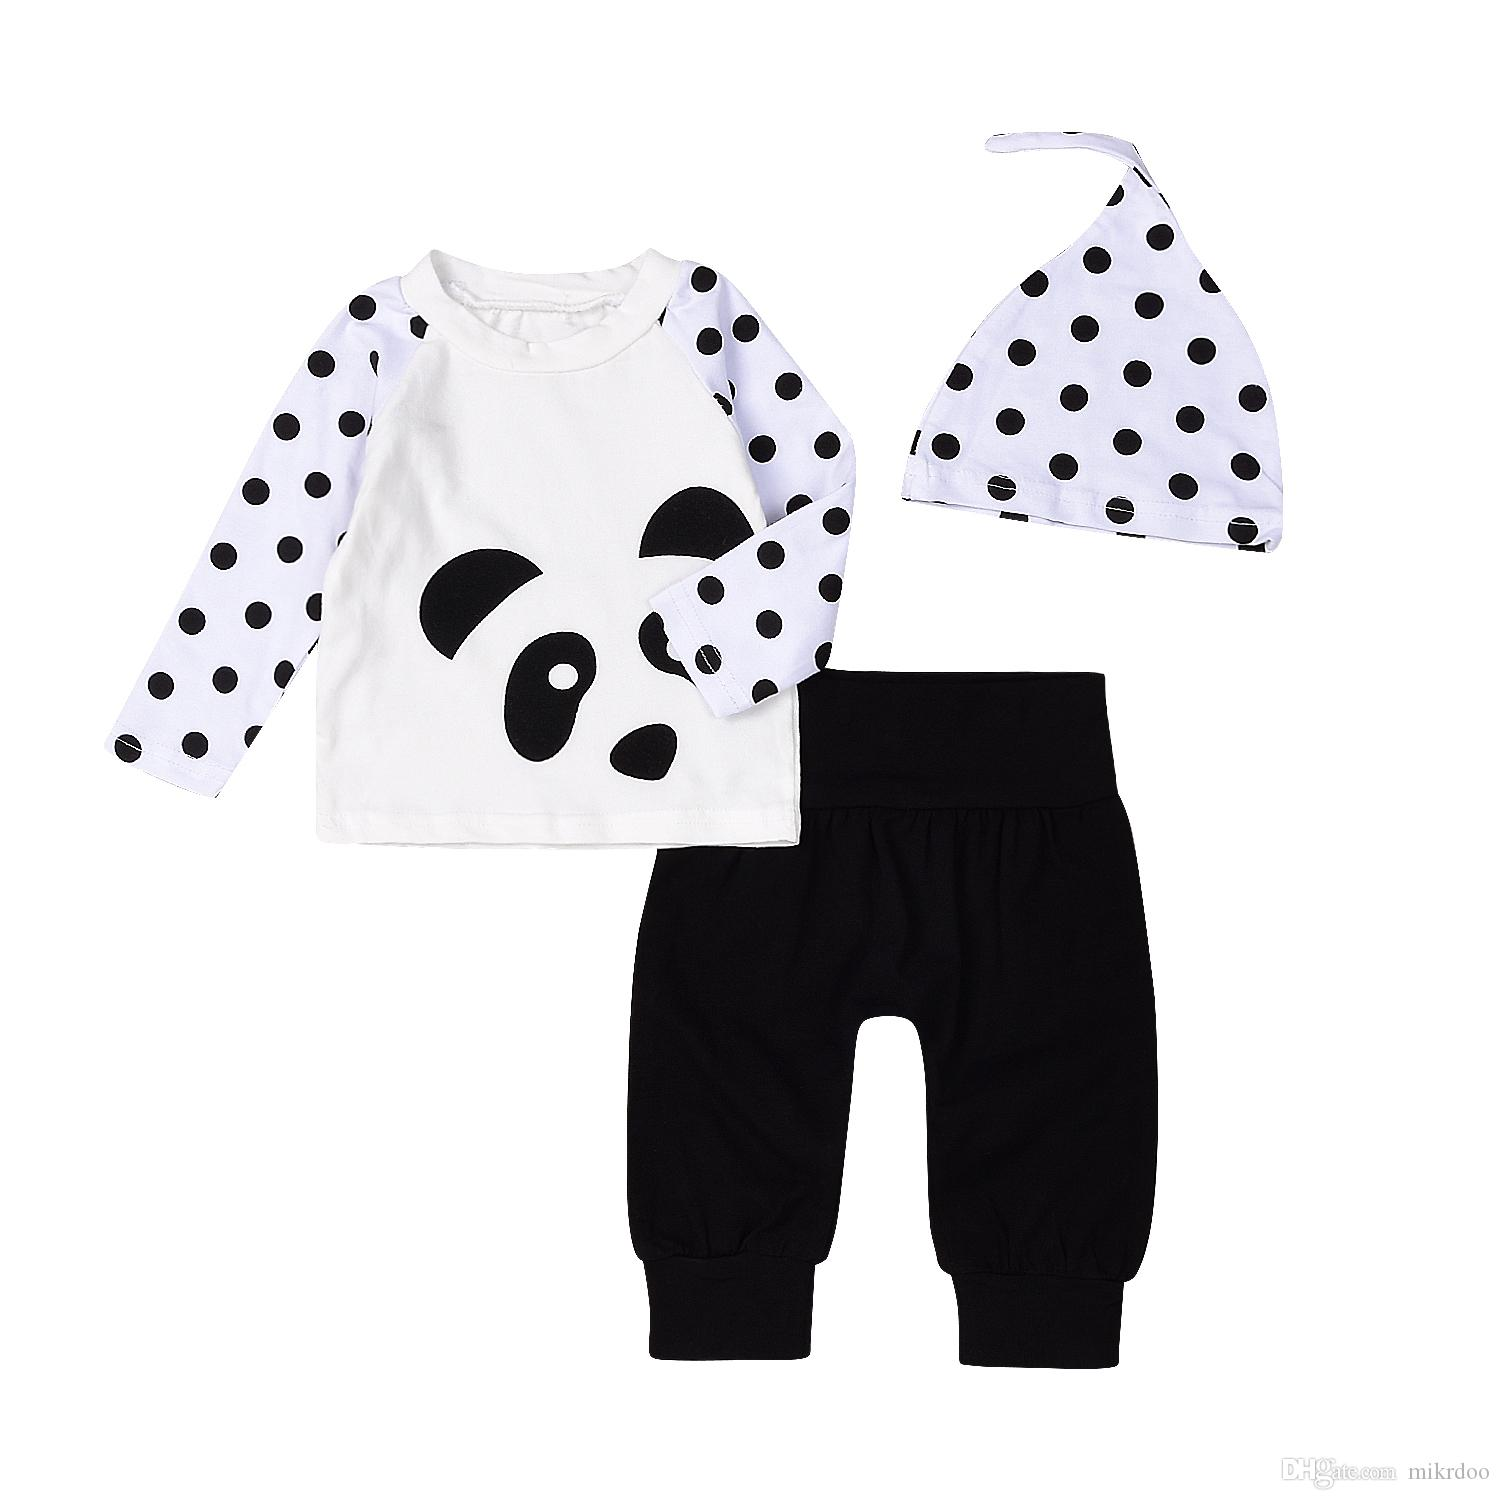 61e6b1158 2019 Mikrdoo Hot Baby Clothes Suit Kids Boy Girls Panda Dot Tshirt ...